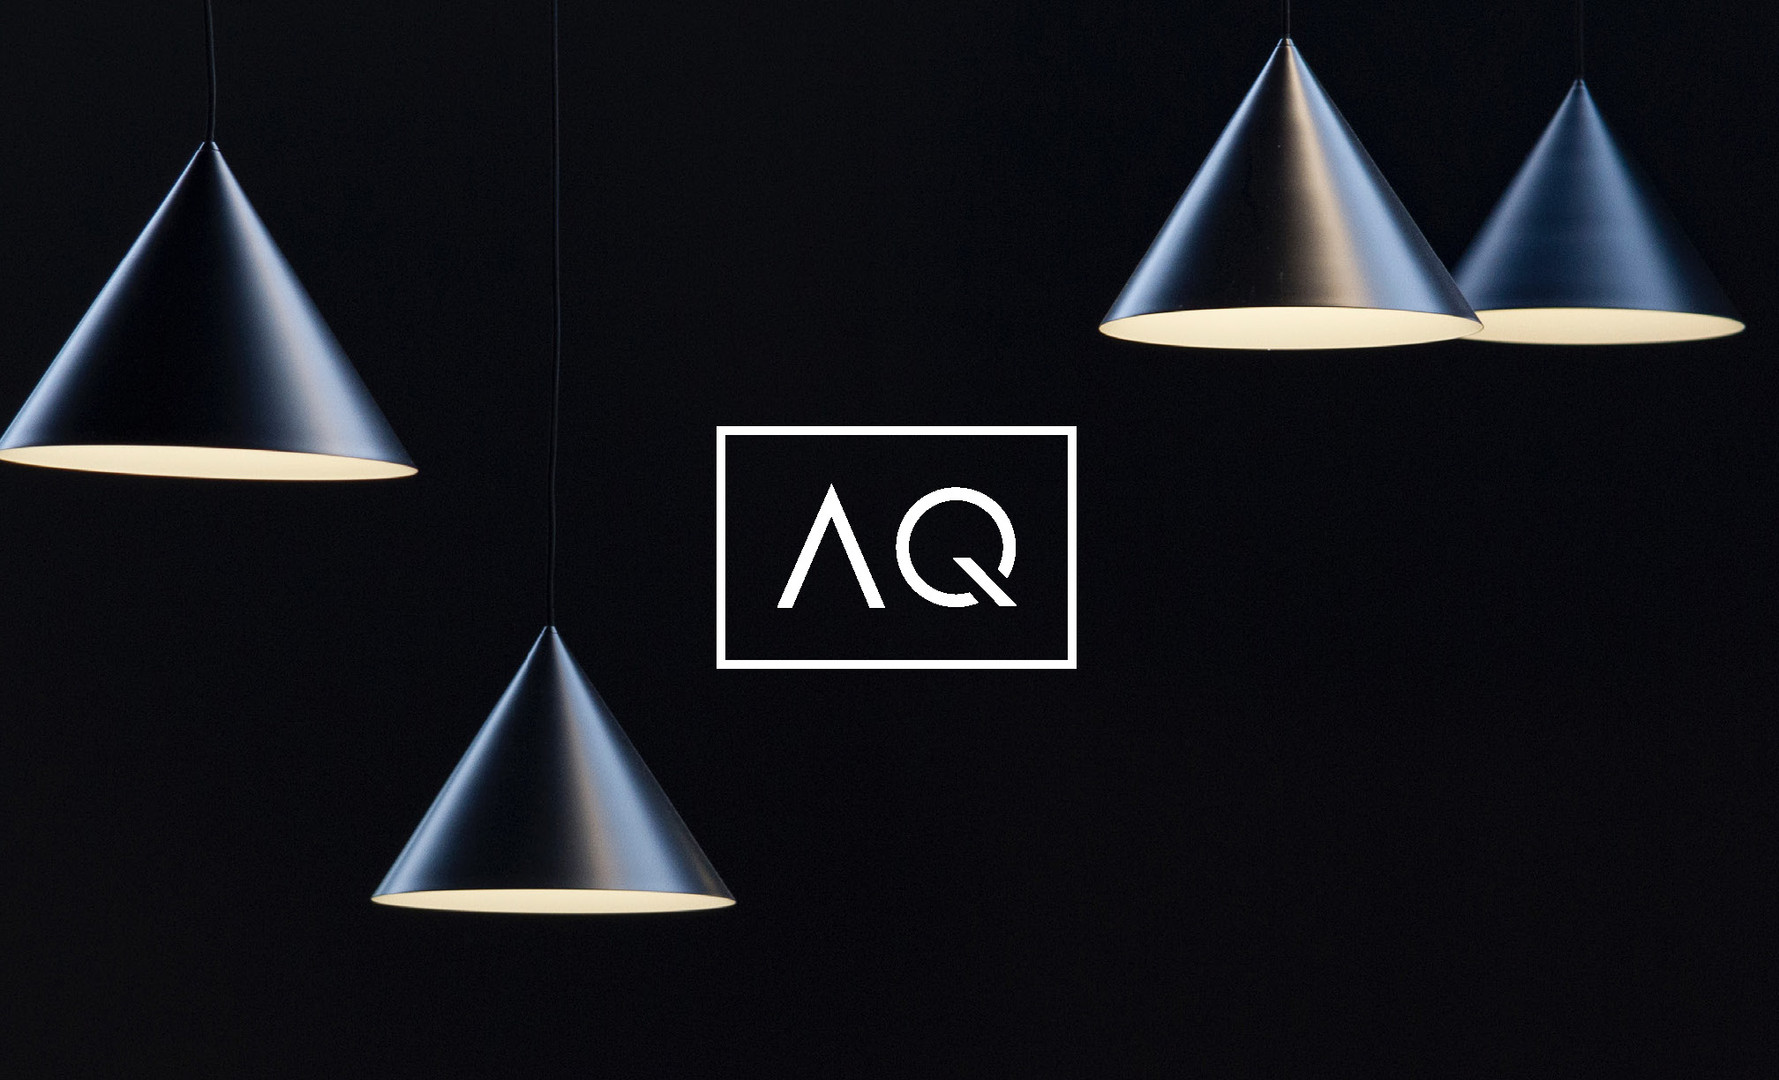 AQLUM_lighting_Collateral_v1.jpg